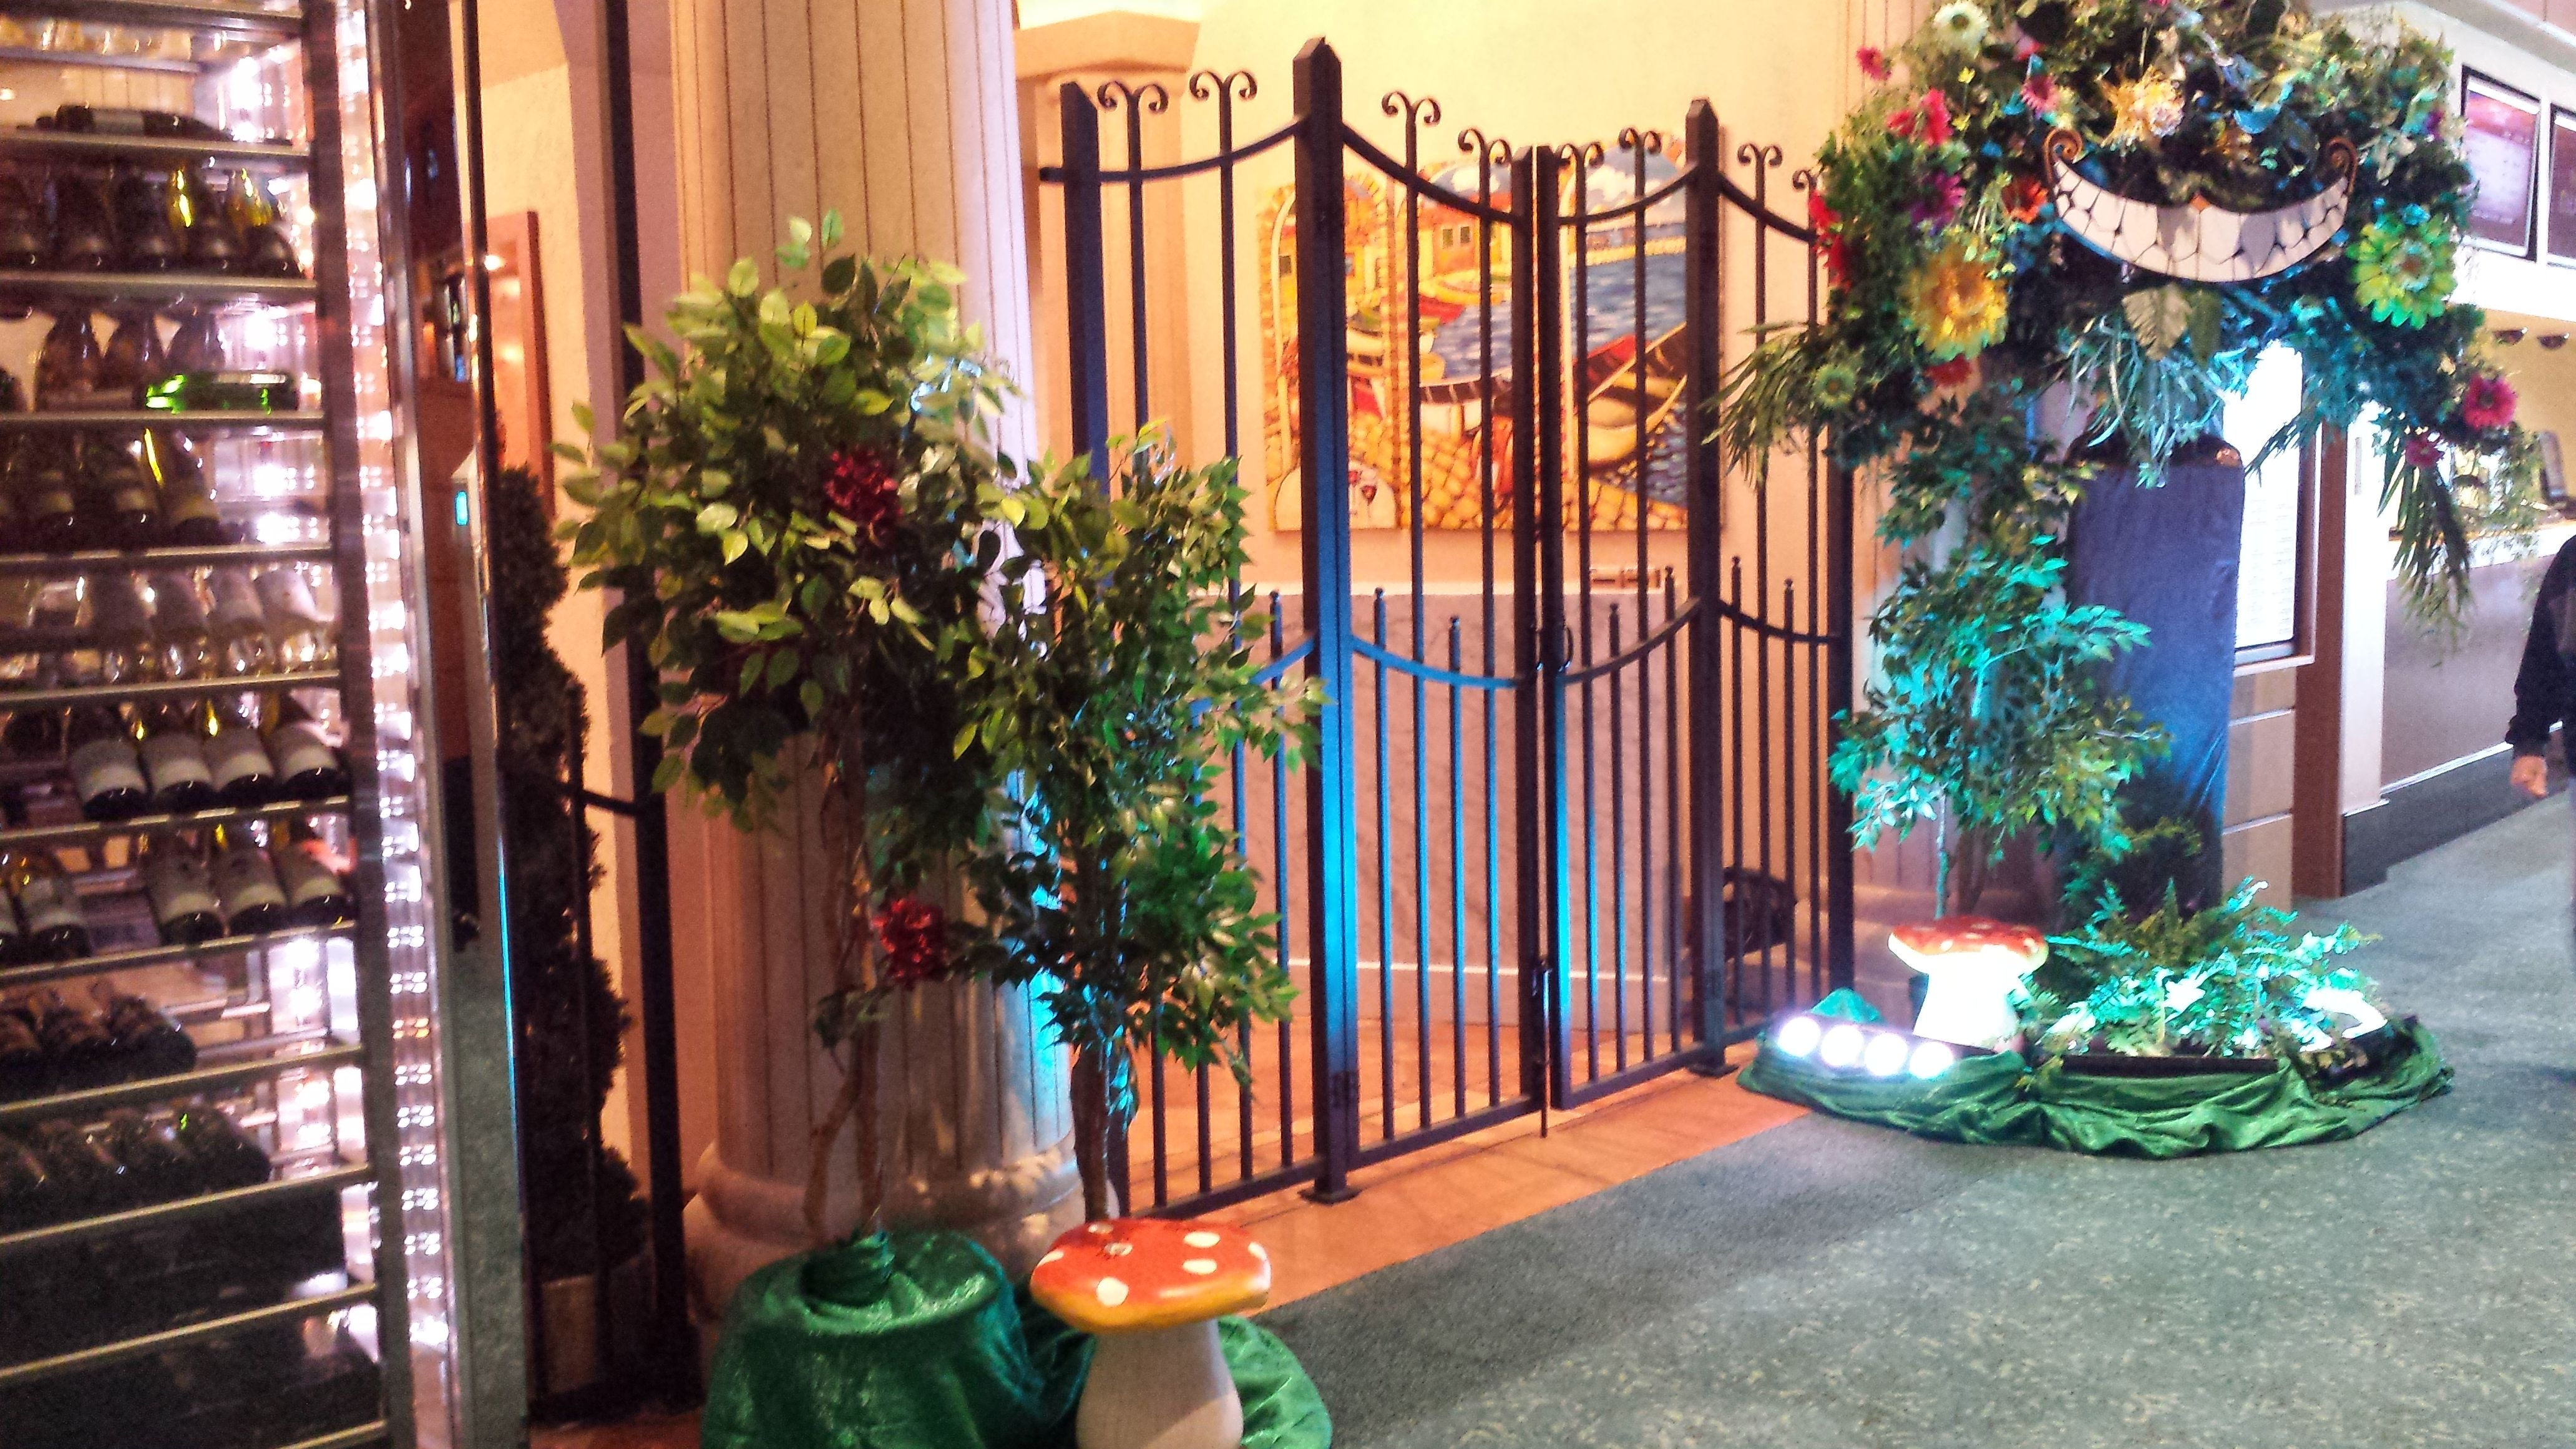 Alice in Wonderland Theme Event Decor and Props, built and designed in house by Sixth Star Entertainment. www.sixthstarentertainment.com 954-462-6760